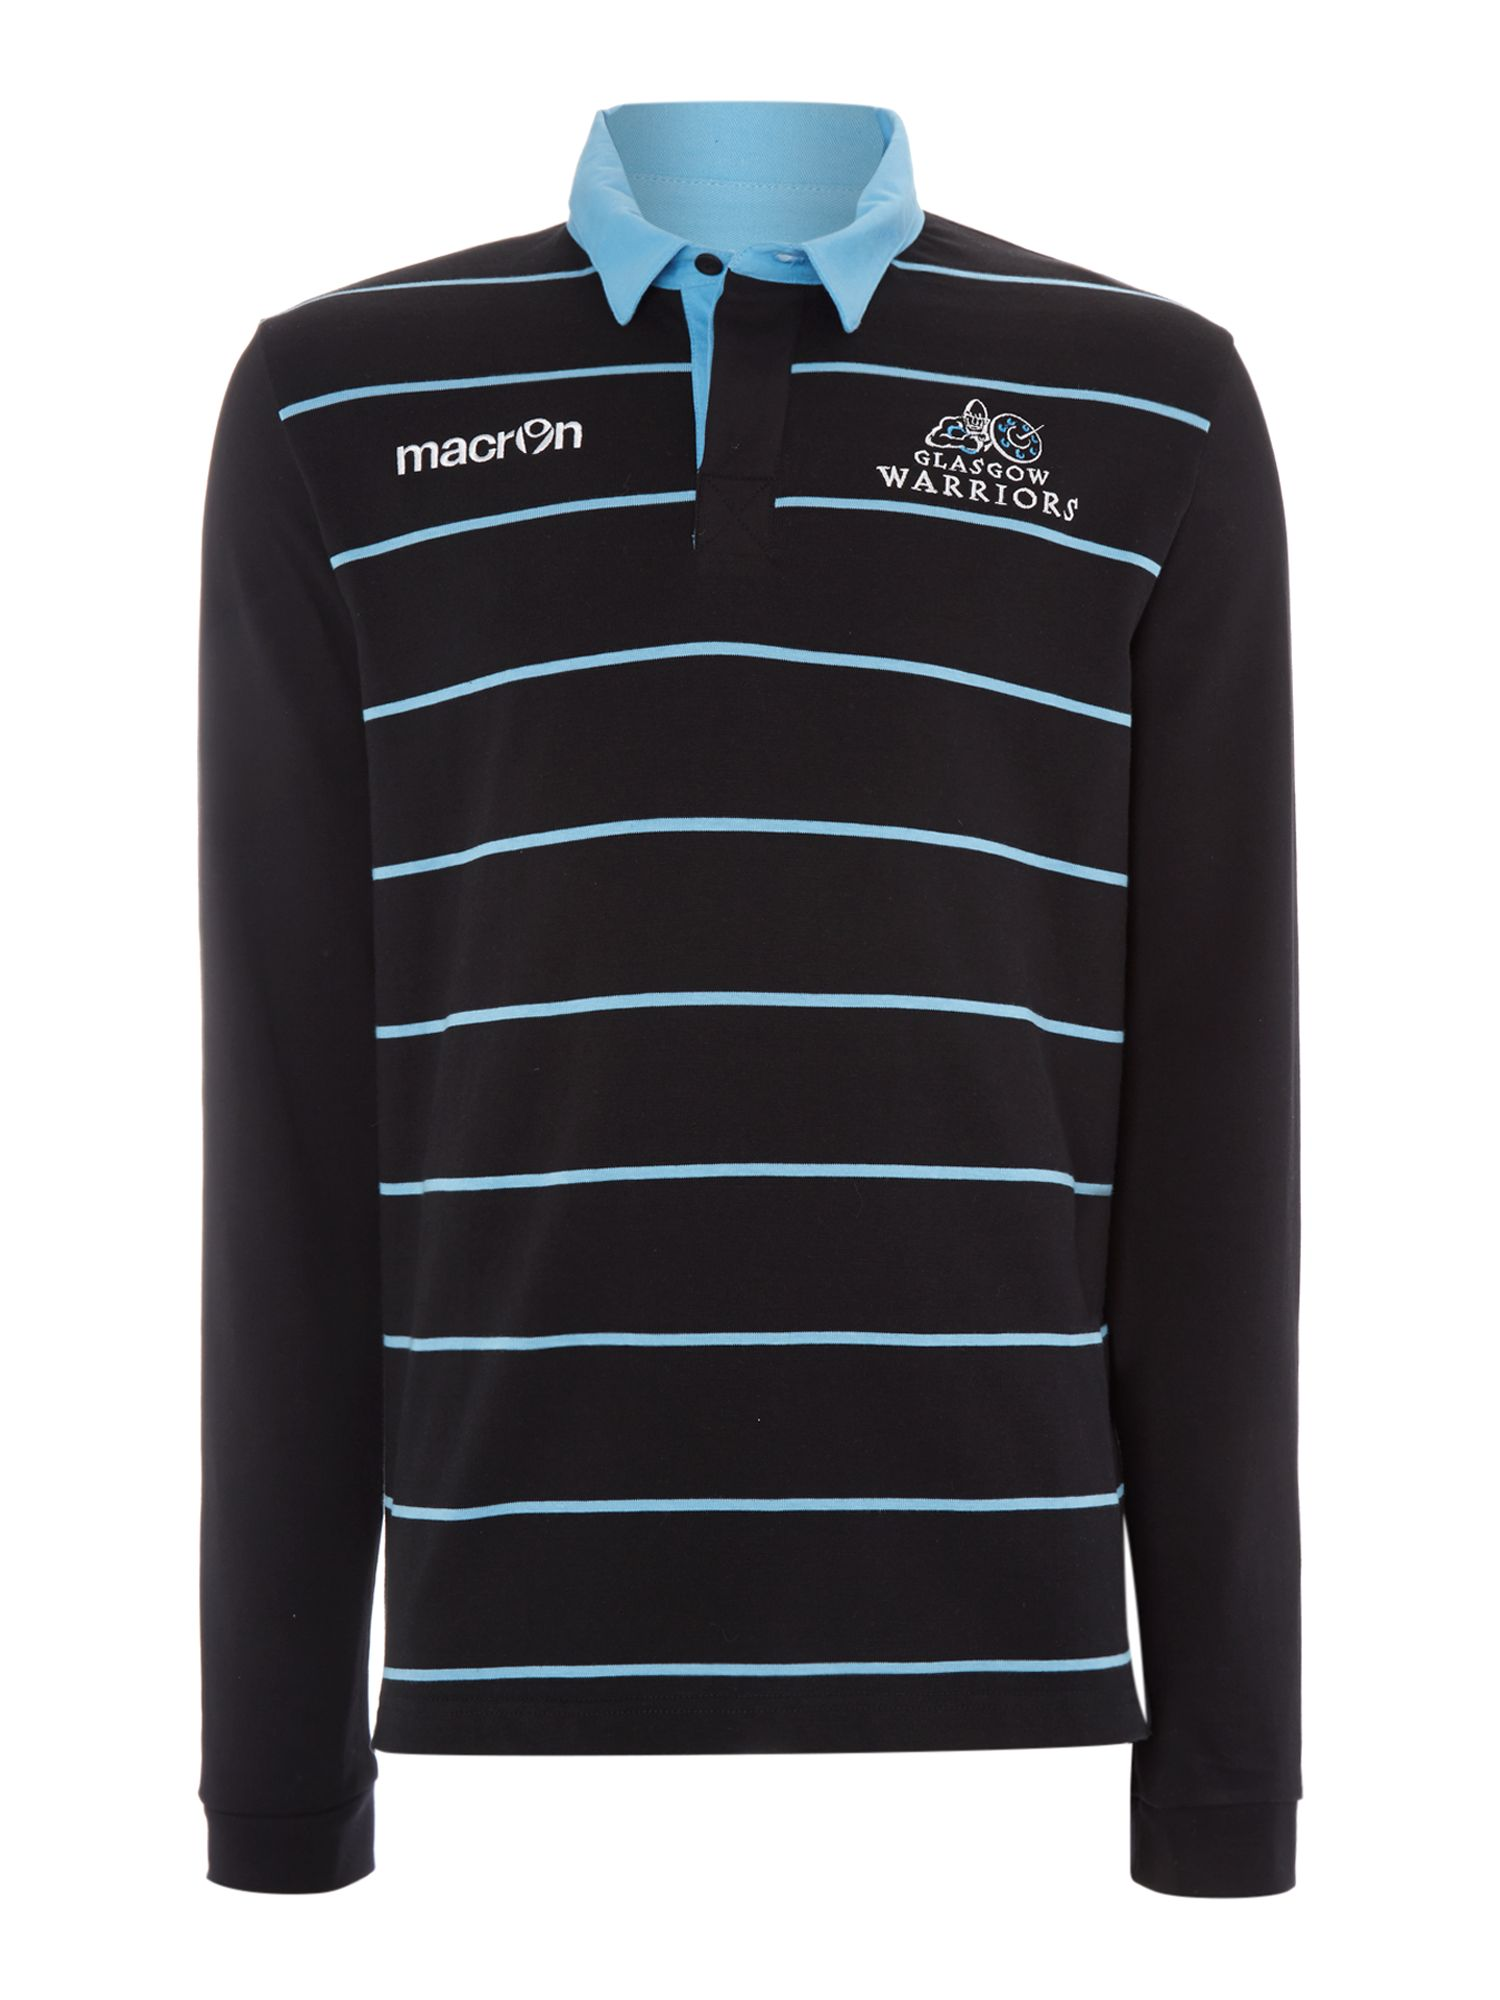 Glasgow warriors long sleeve cotton shirt